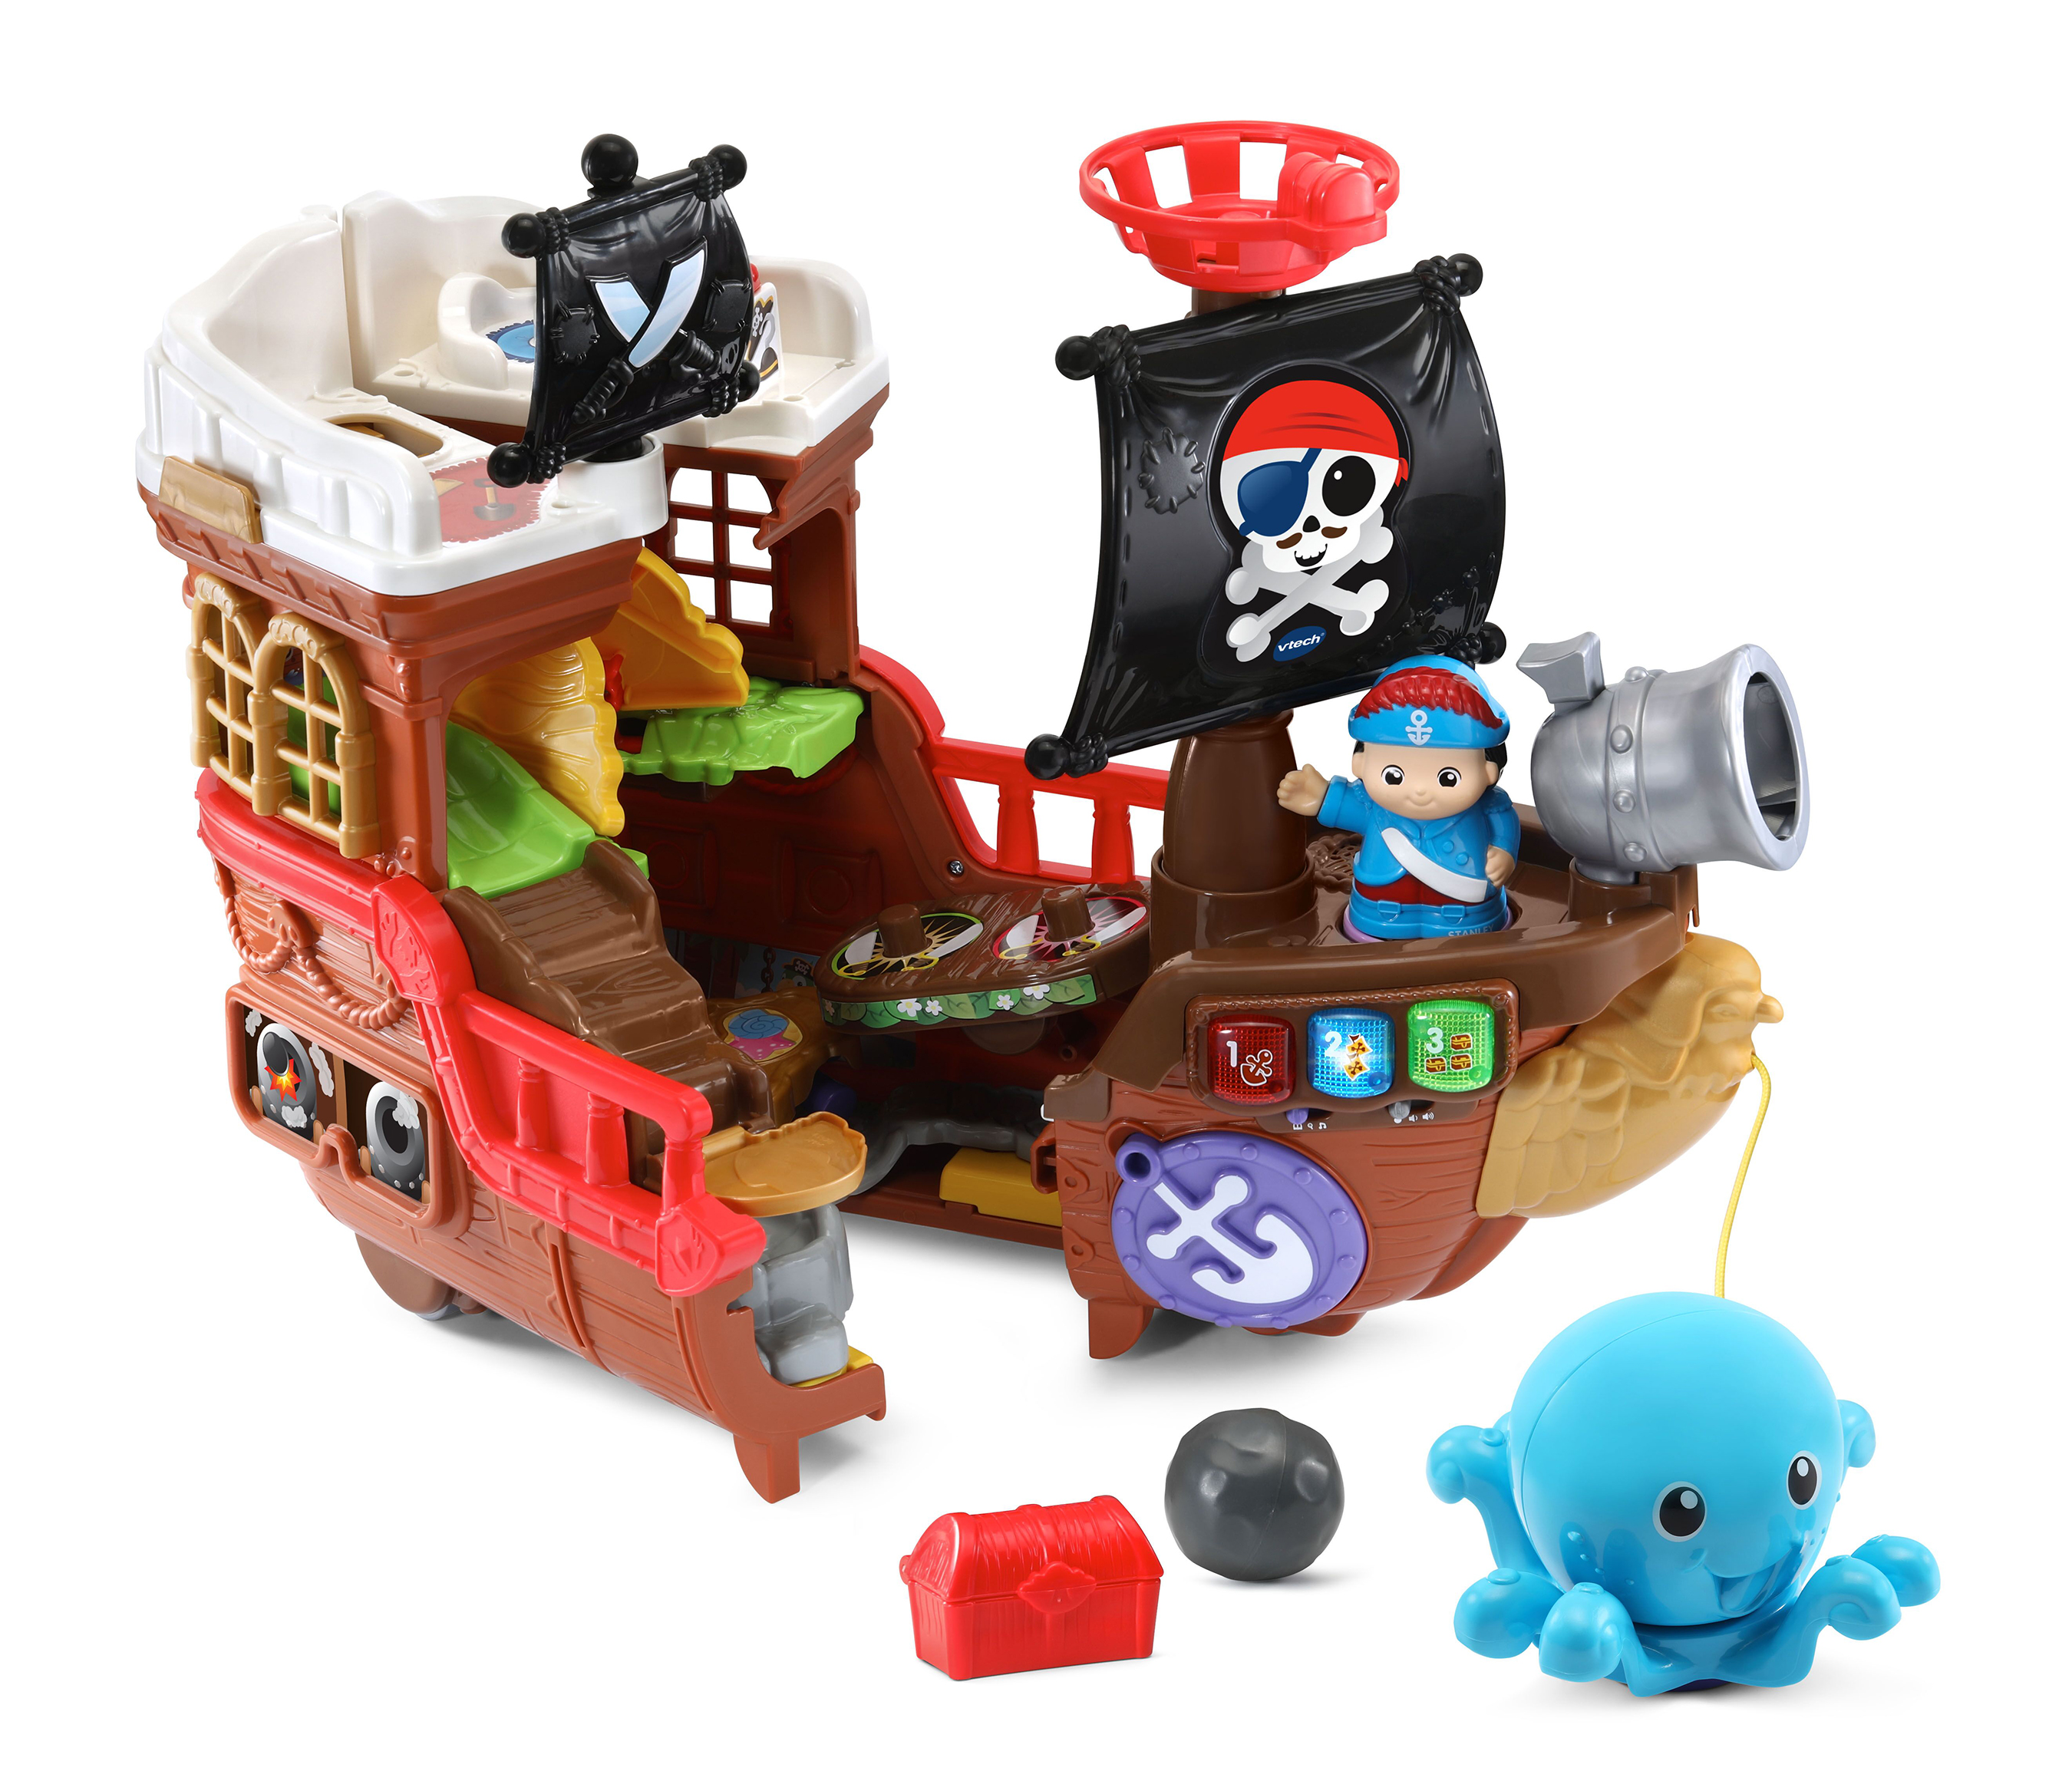 VTech® announces the availability of new infant, toddler and preschool toys, including the Treasure Seekers Pirate Ship™.